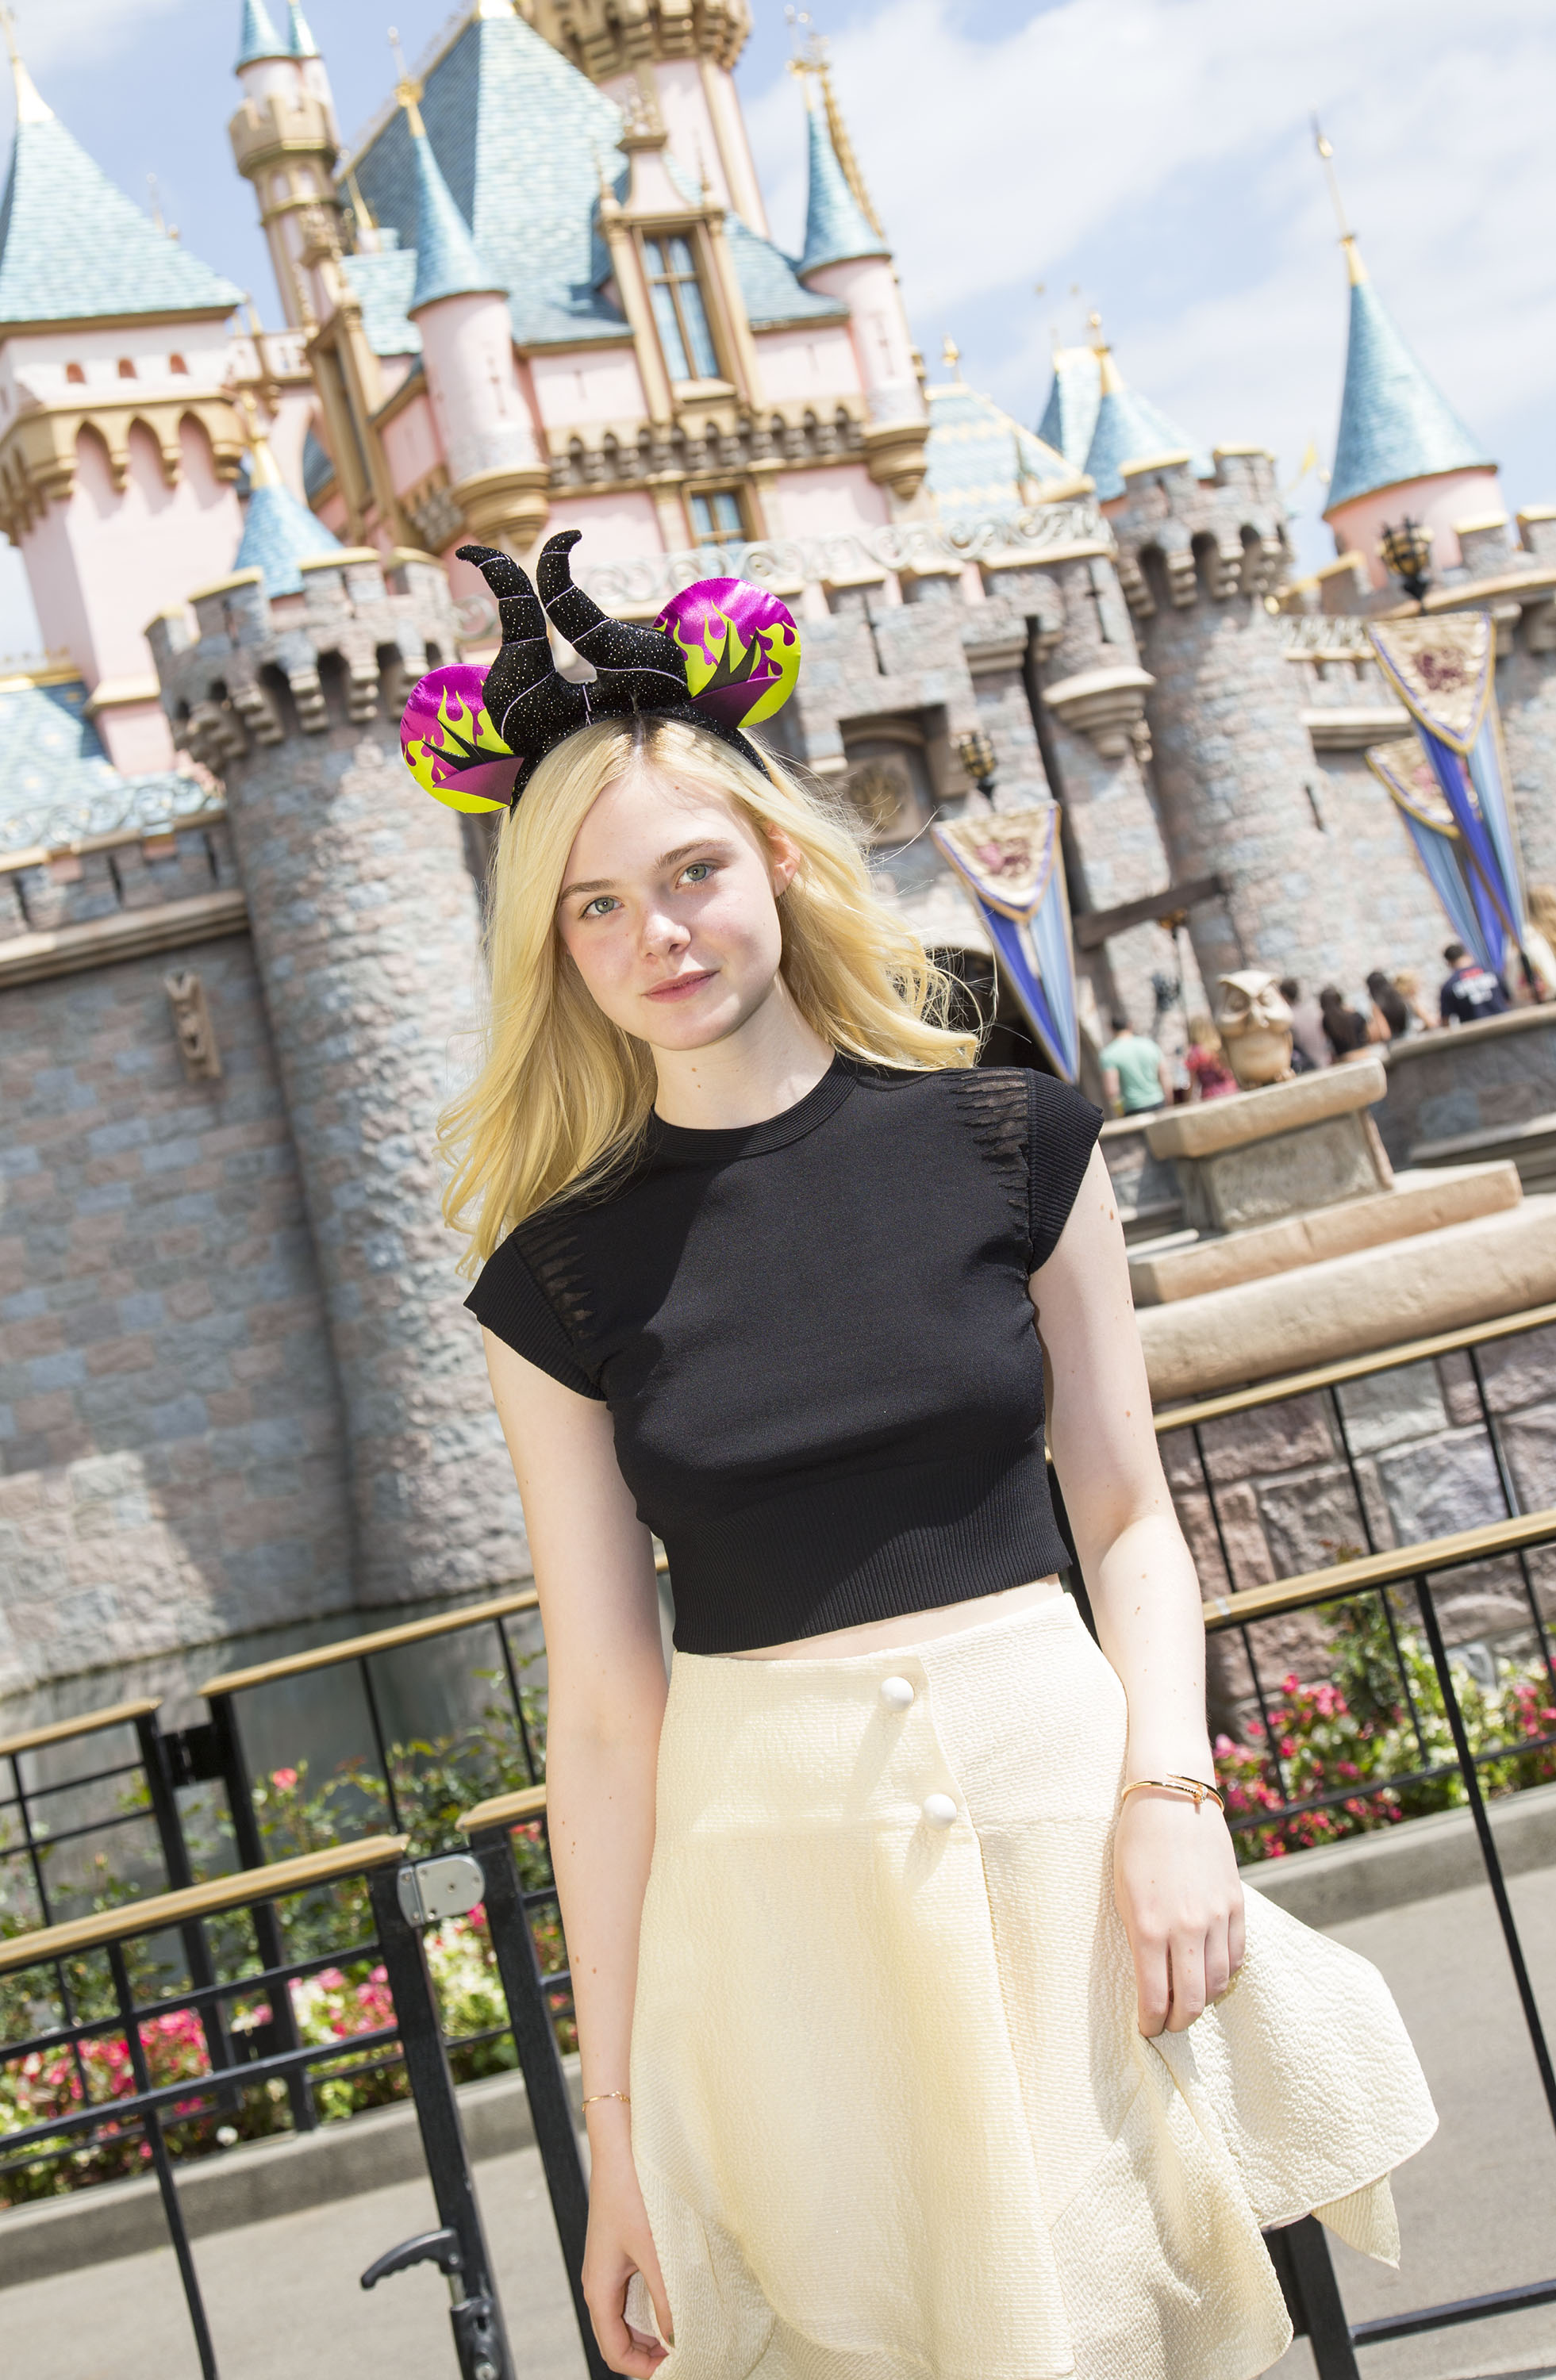 Maleficent-Elle Fanning-PROMO PHOTO-17ABRIL2014-02